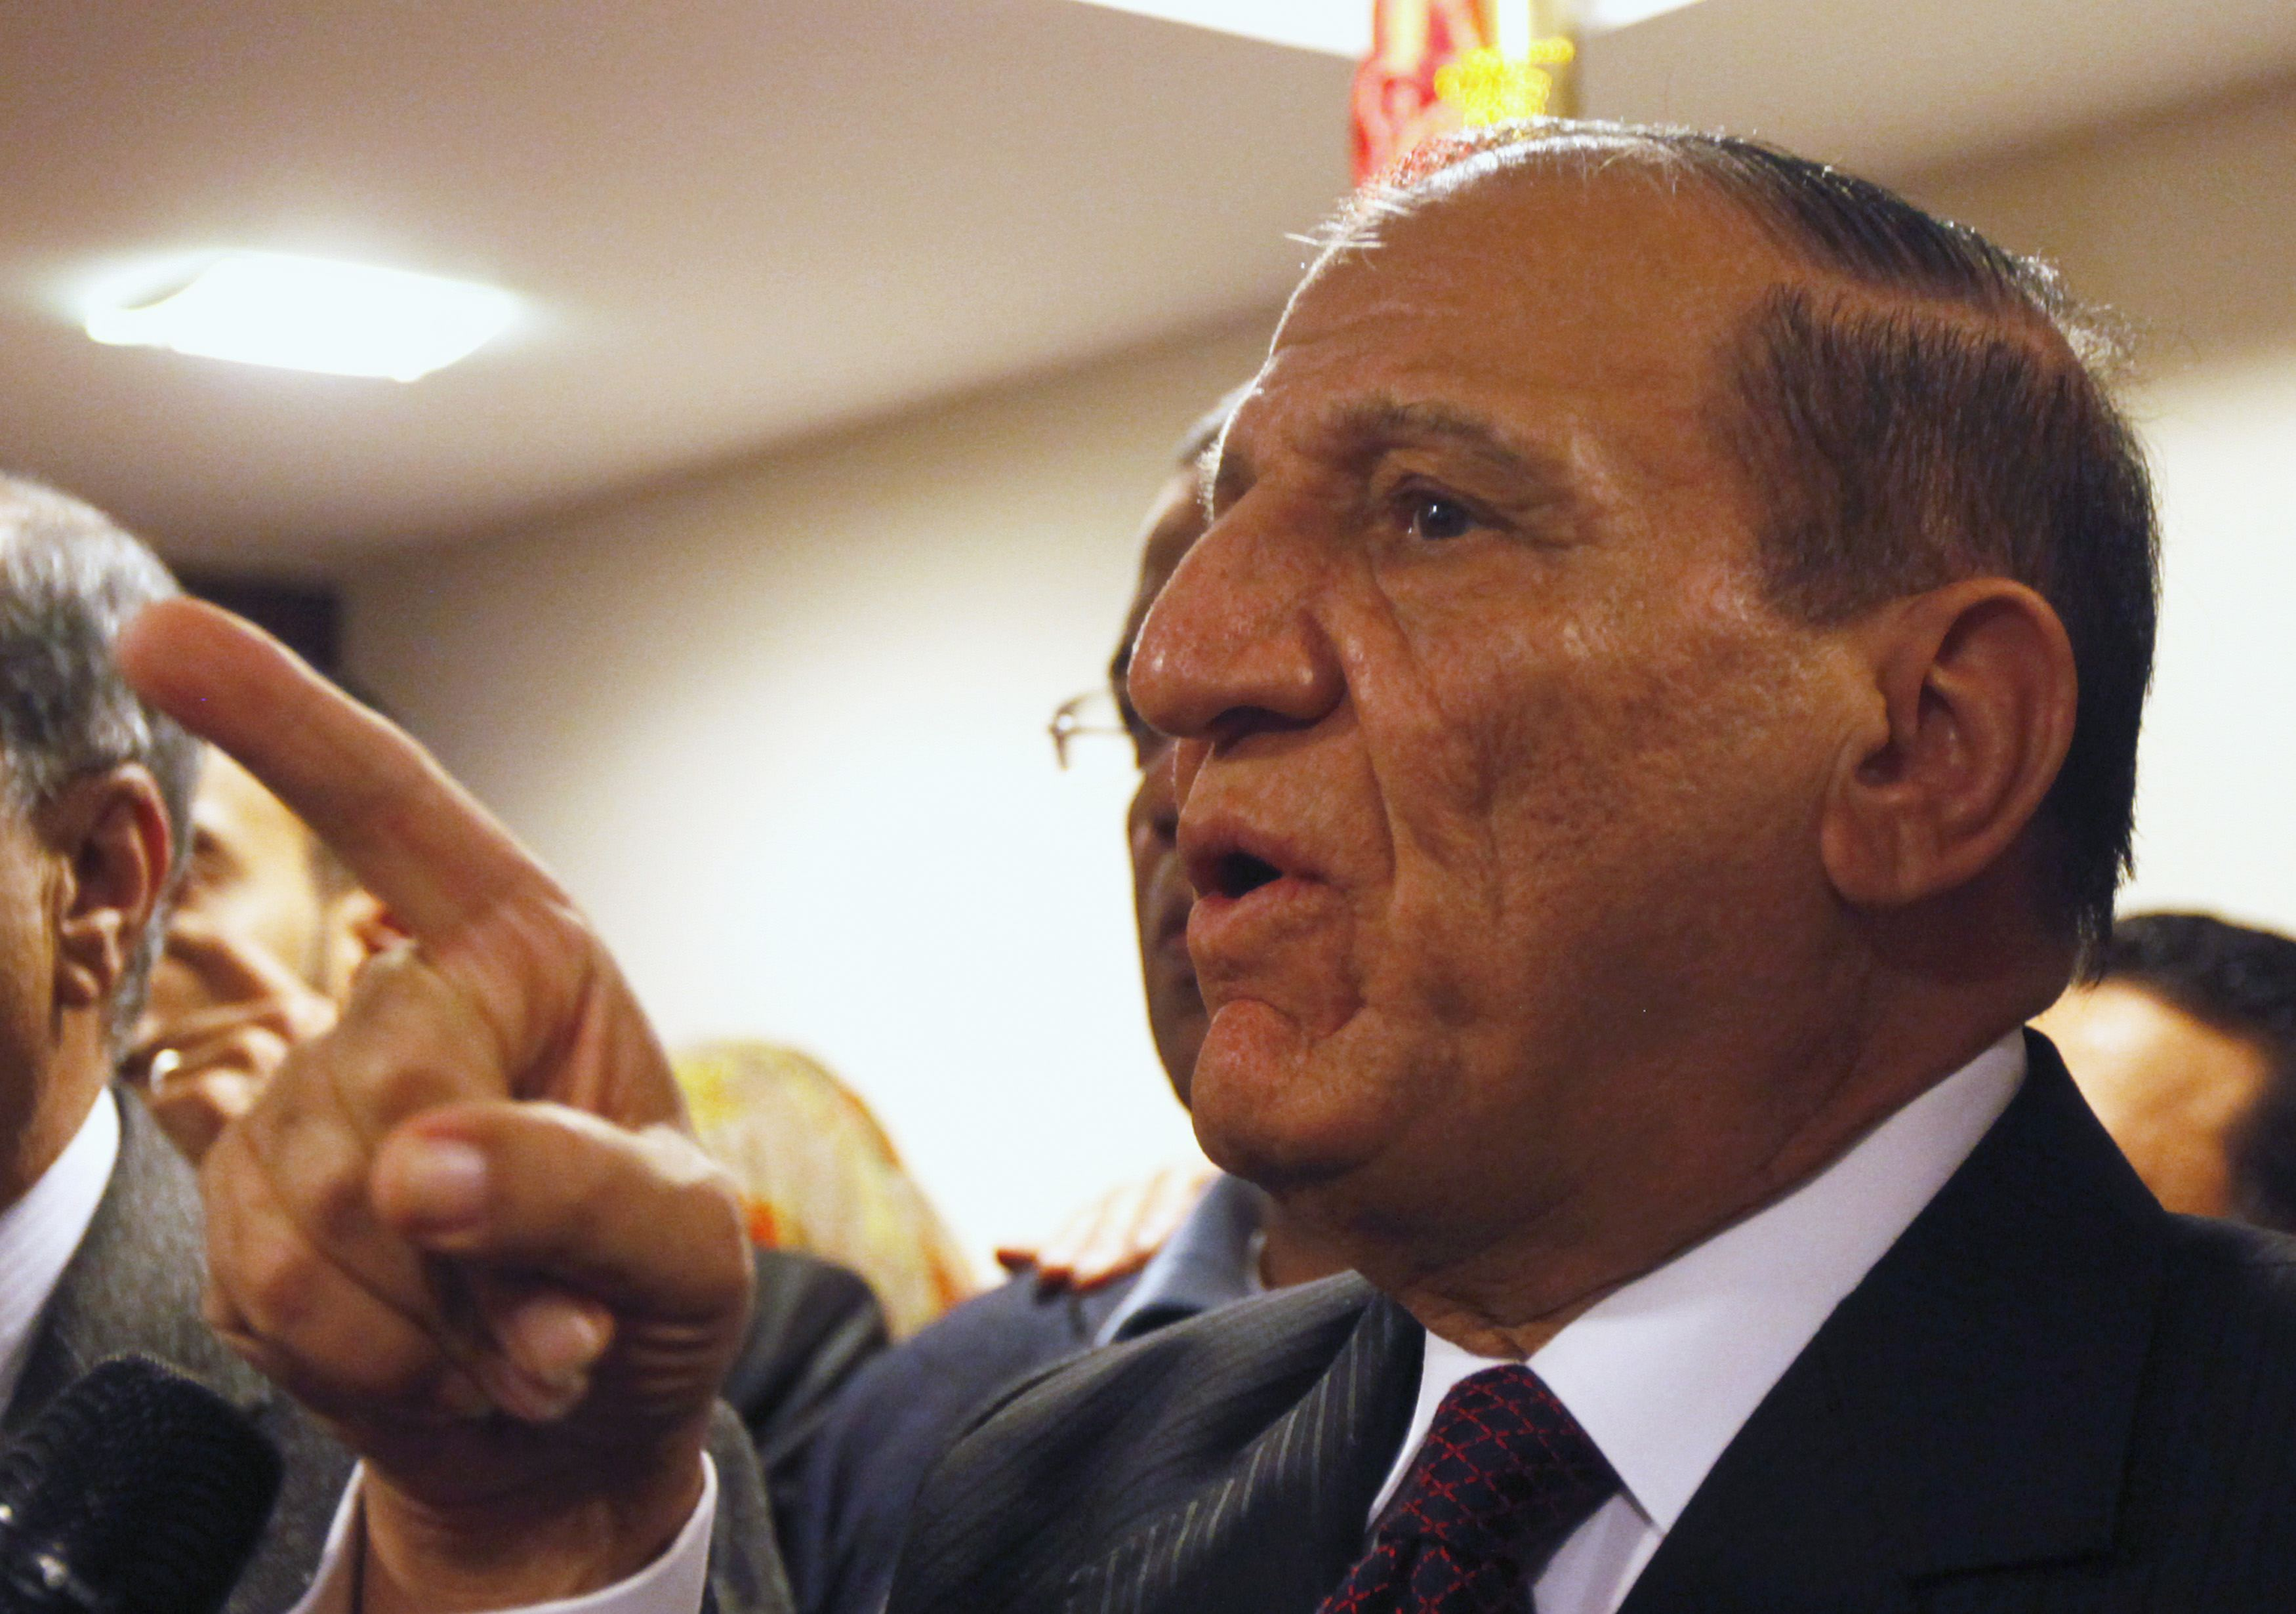 Egypt's former army chief of staff Sami Anan, speaks during news conference at his office in Cairo